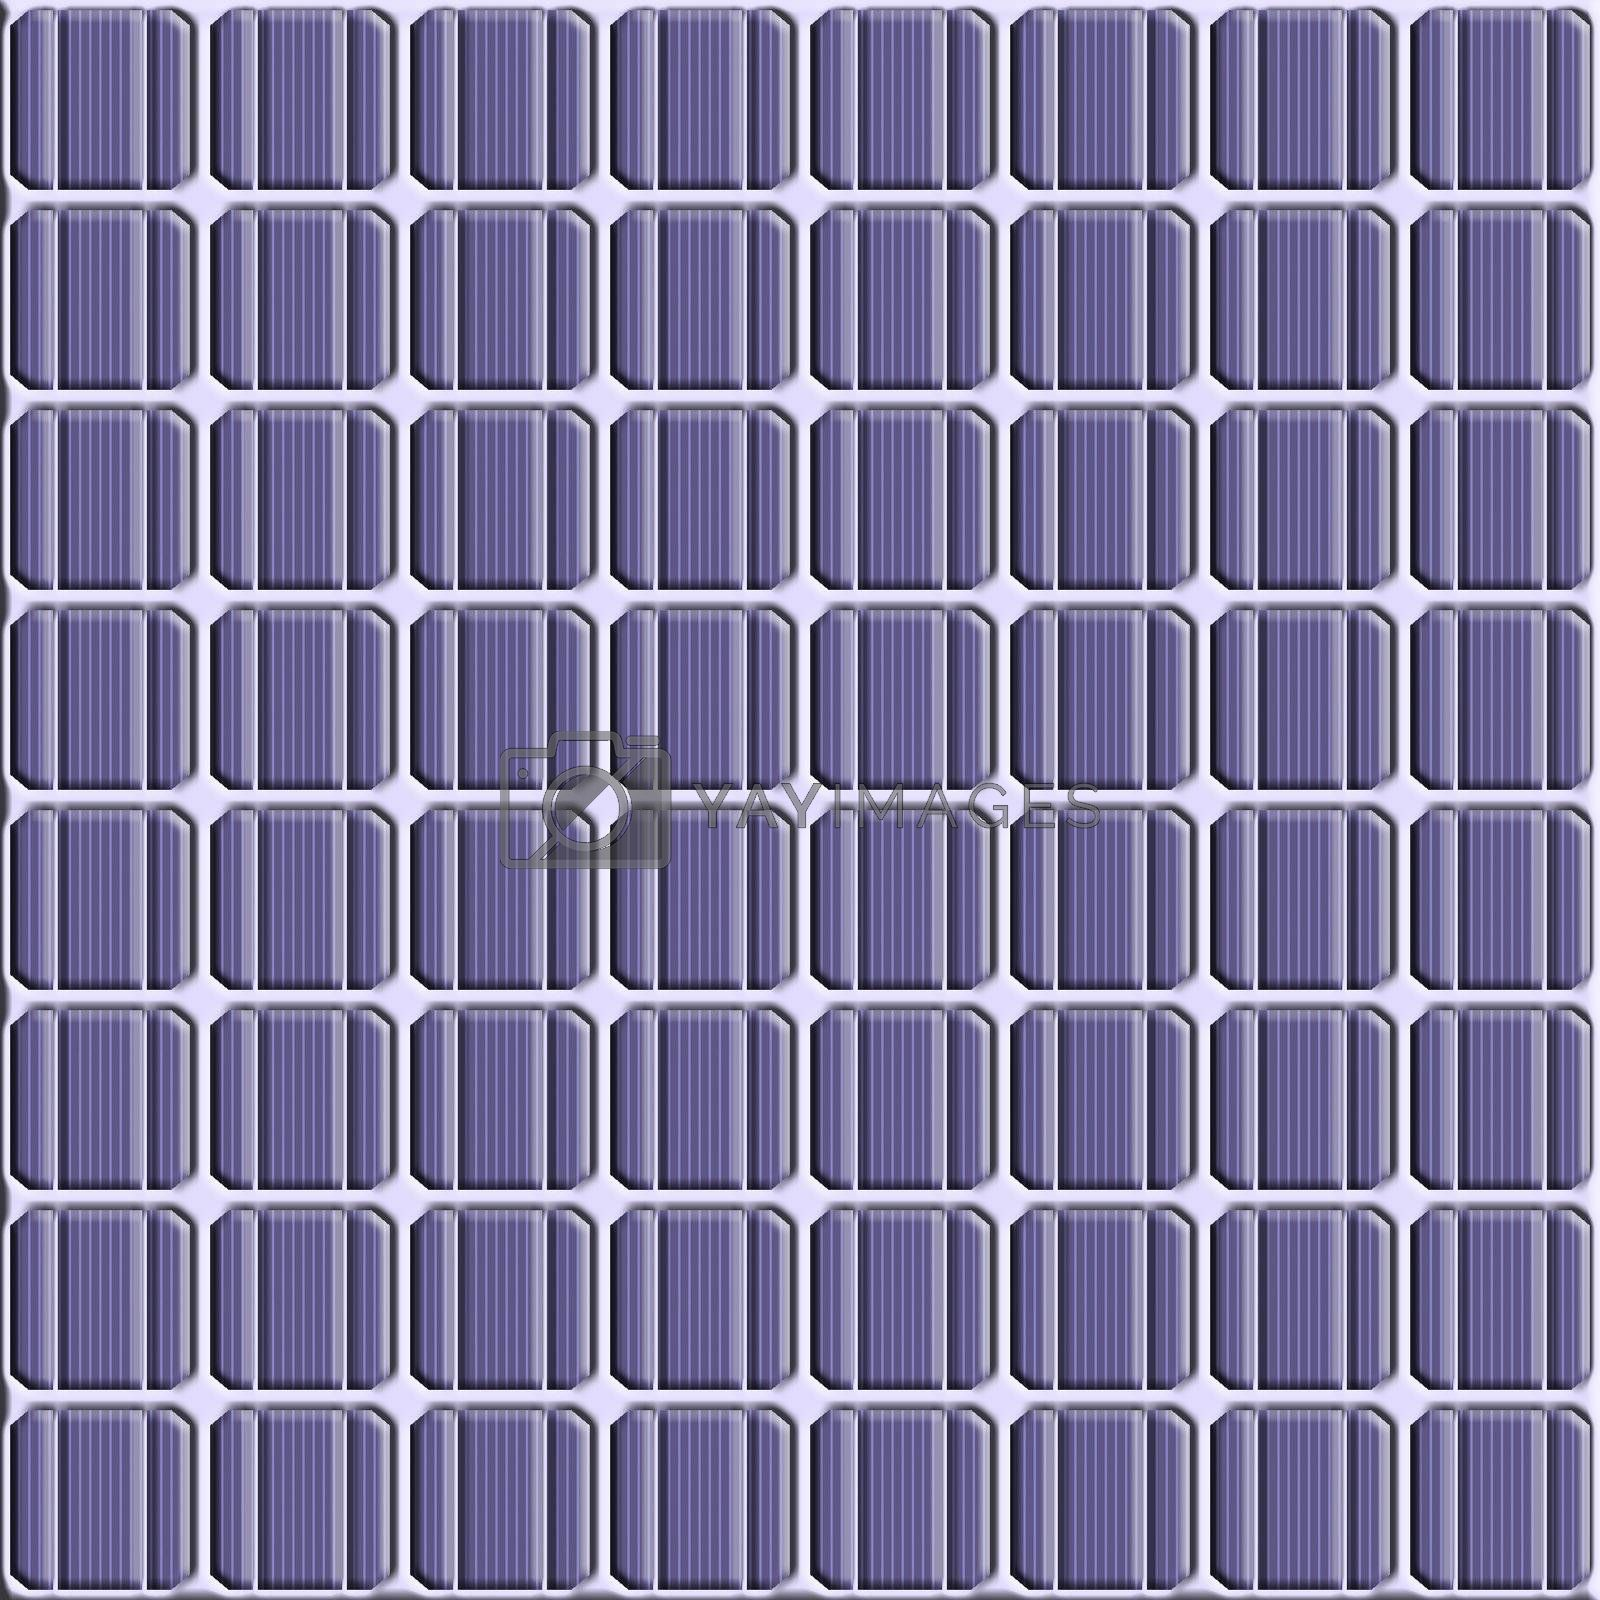 illustration of a solar cell texture pattern